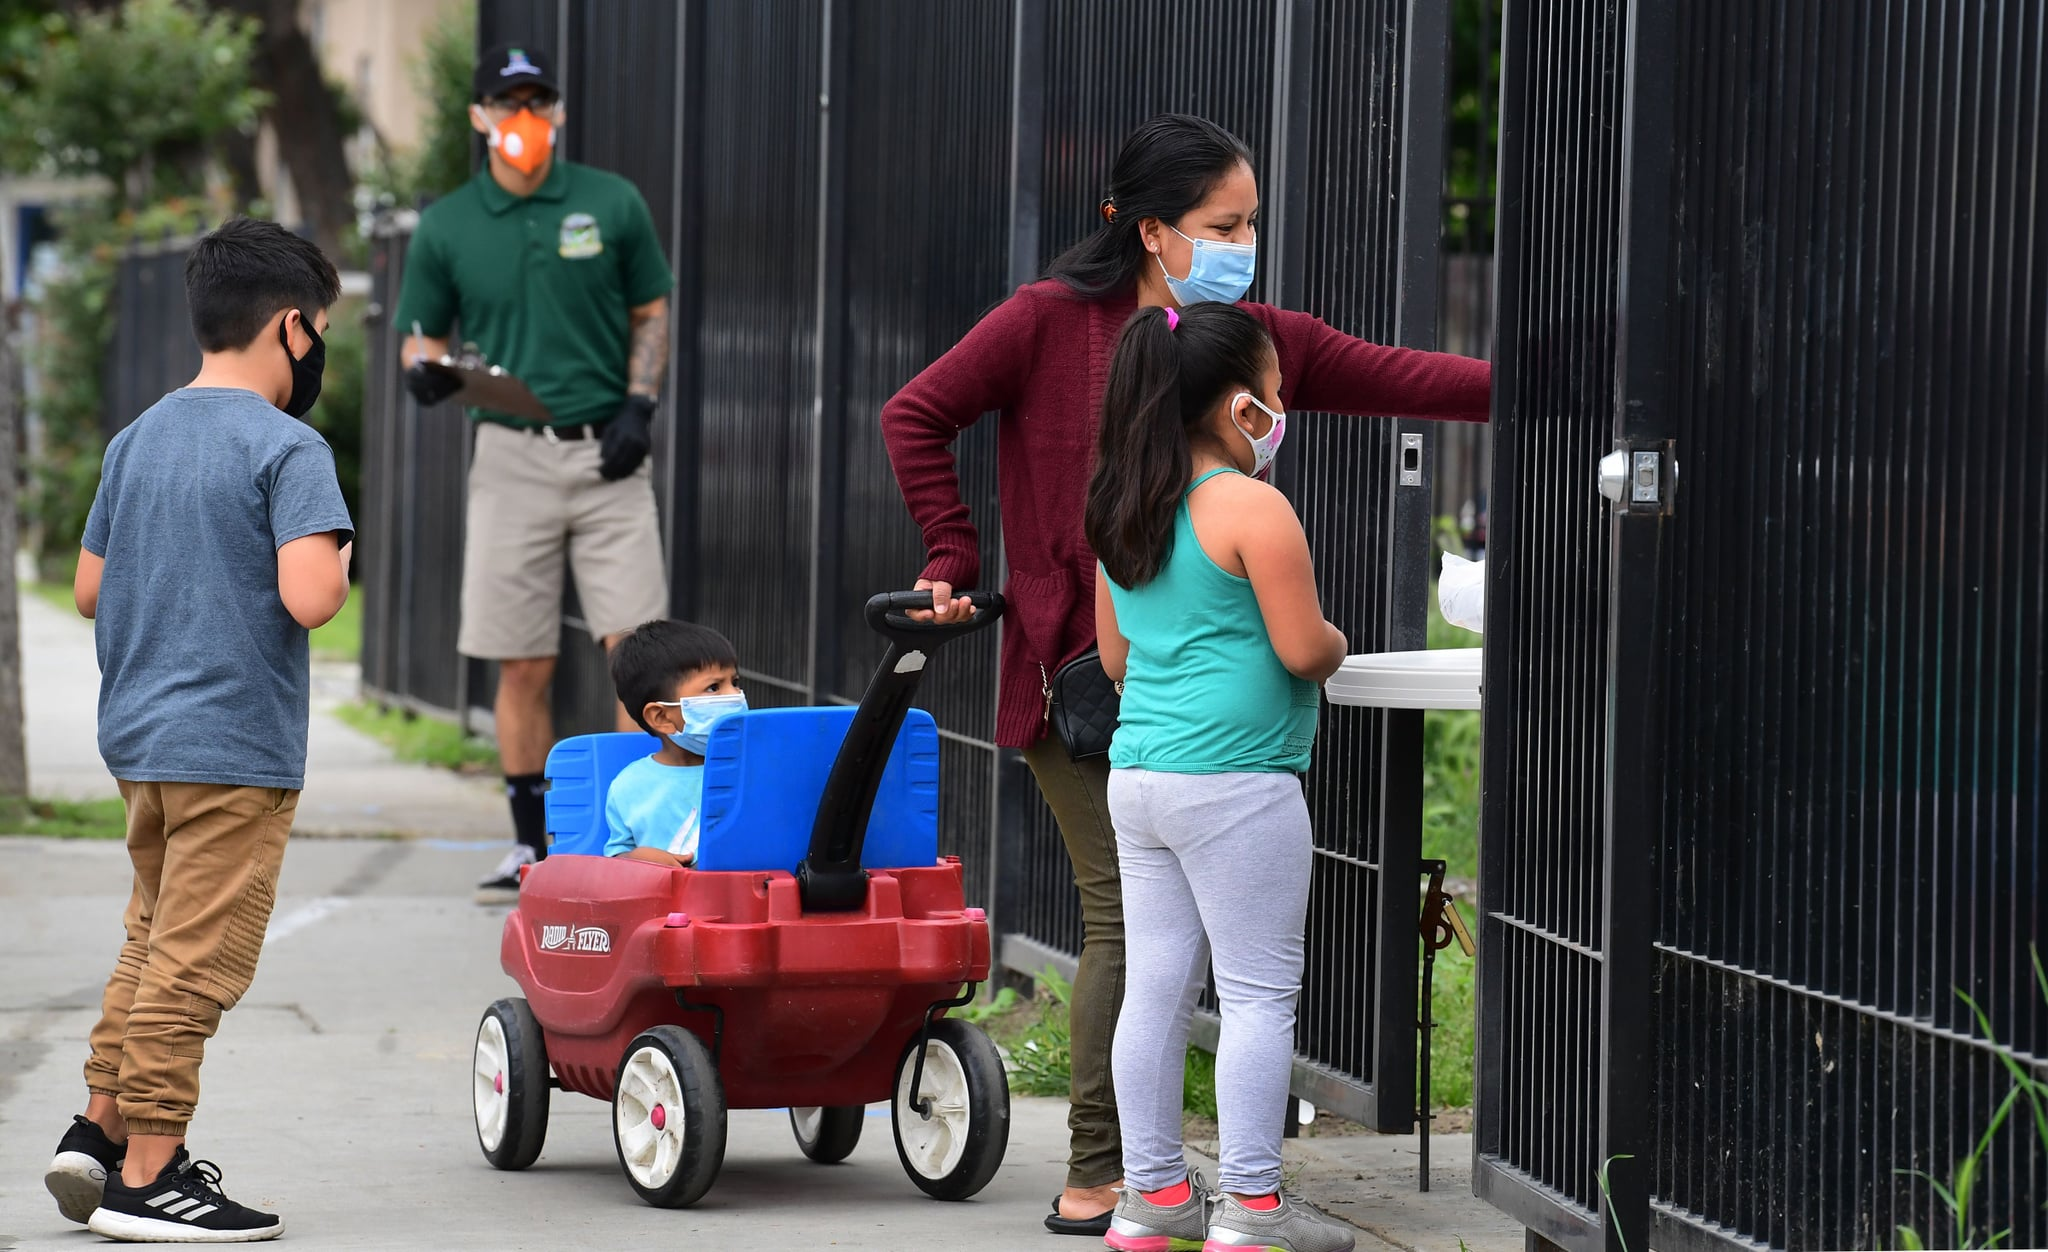 A woman with her children wearing masks, reaches out to pick up a bag of groceries distributed at a food bank opened in response to the coronavirus pandemic on April 20, 2020 in El Monte, California (Photo by Frederic J. BROWN / AFP) (Photo by FREDERIC J. BROWN/AFP via Getty Images)